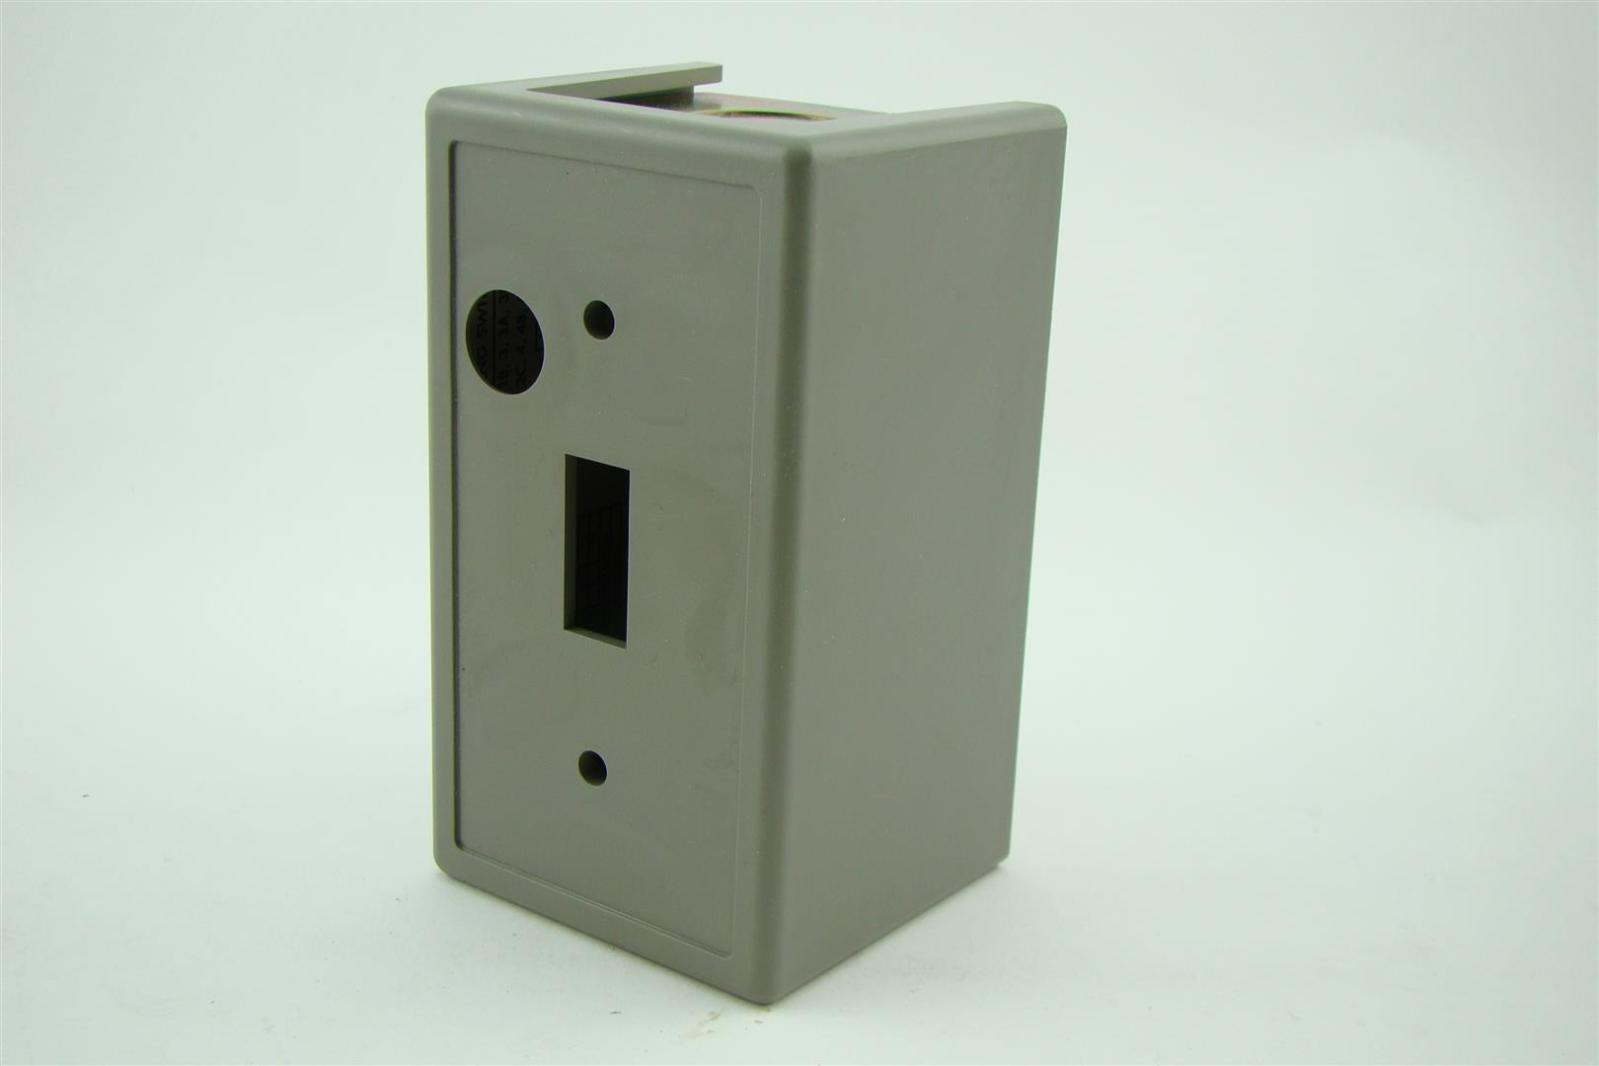 Square d motor starting switch type 1 enclosure 55447 ebay for Square d motor switch